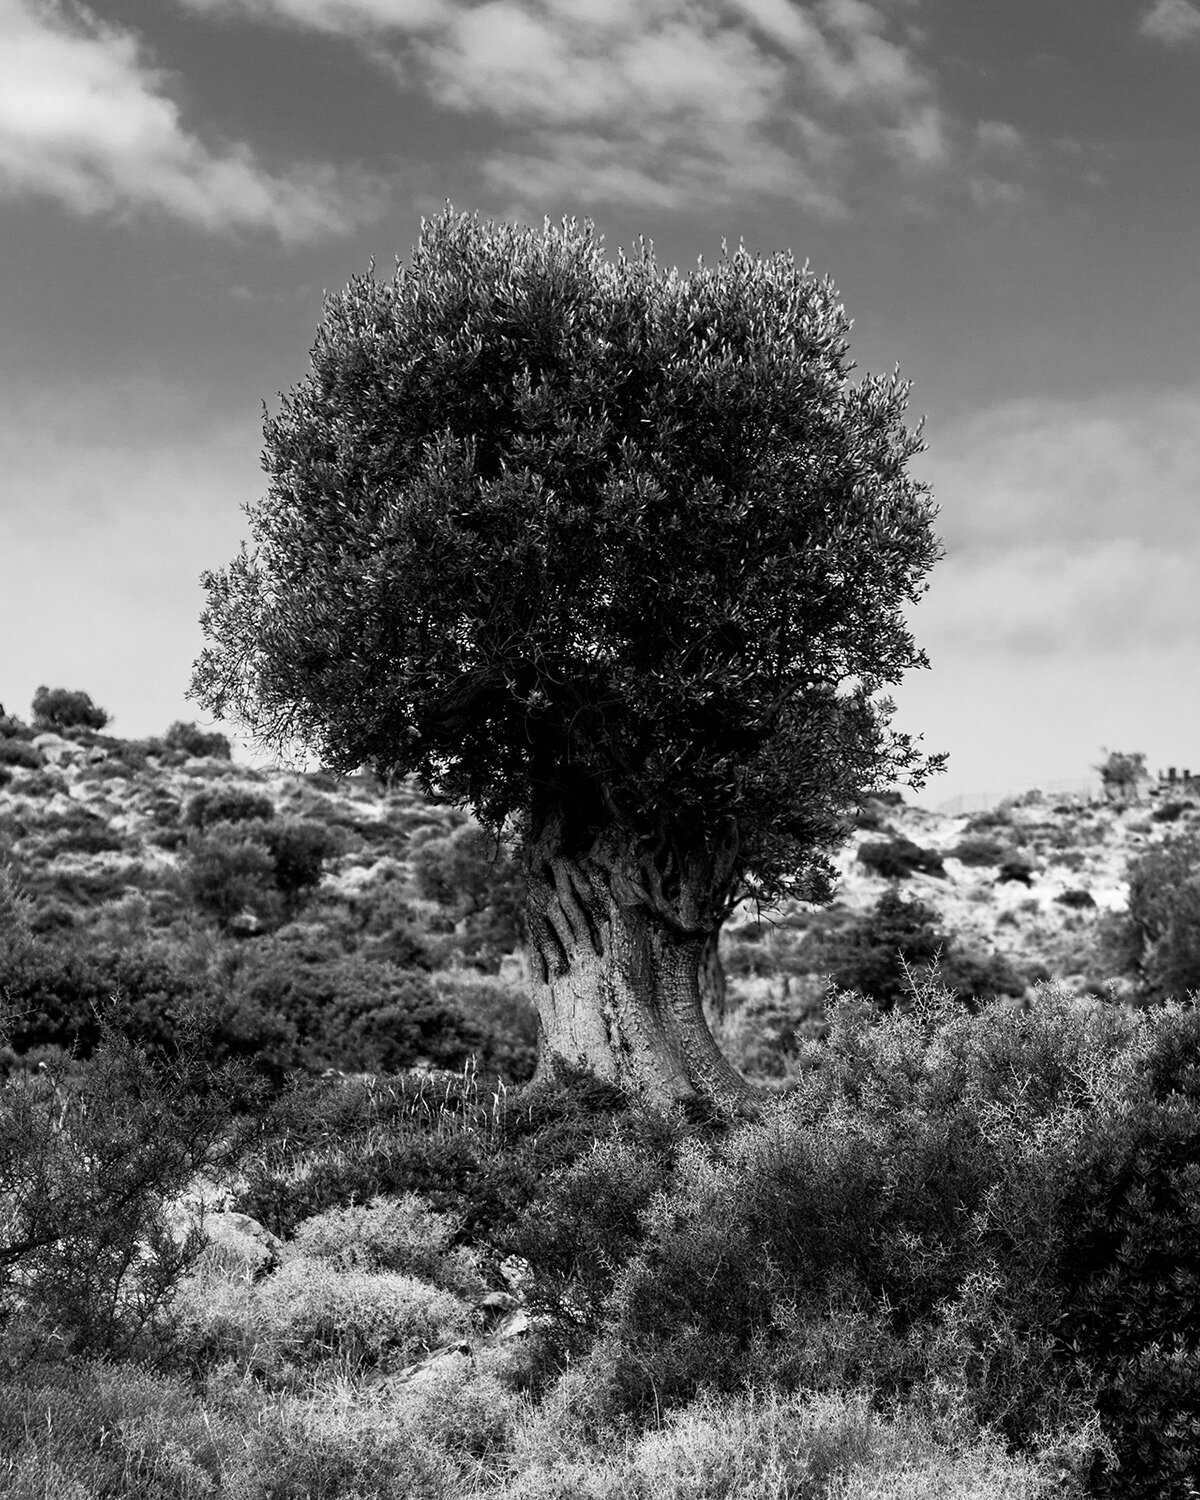 Jerome Clark,  Olive Tree,  2019, inkjet on archival paper, 8 x 10 inches, 13 x 16 inches framed